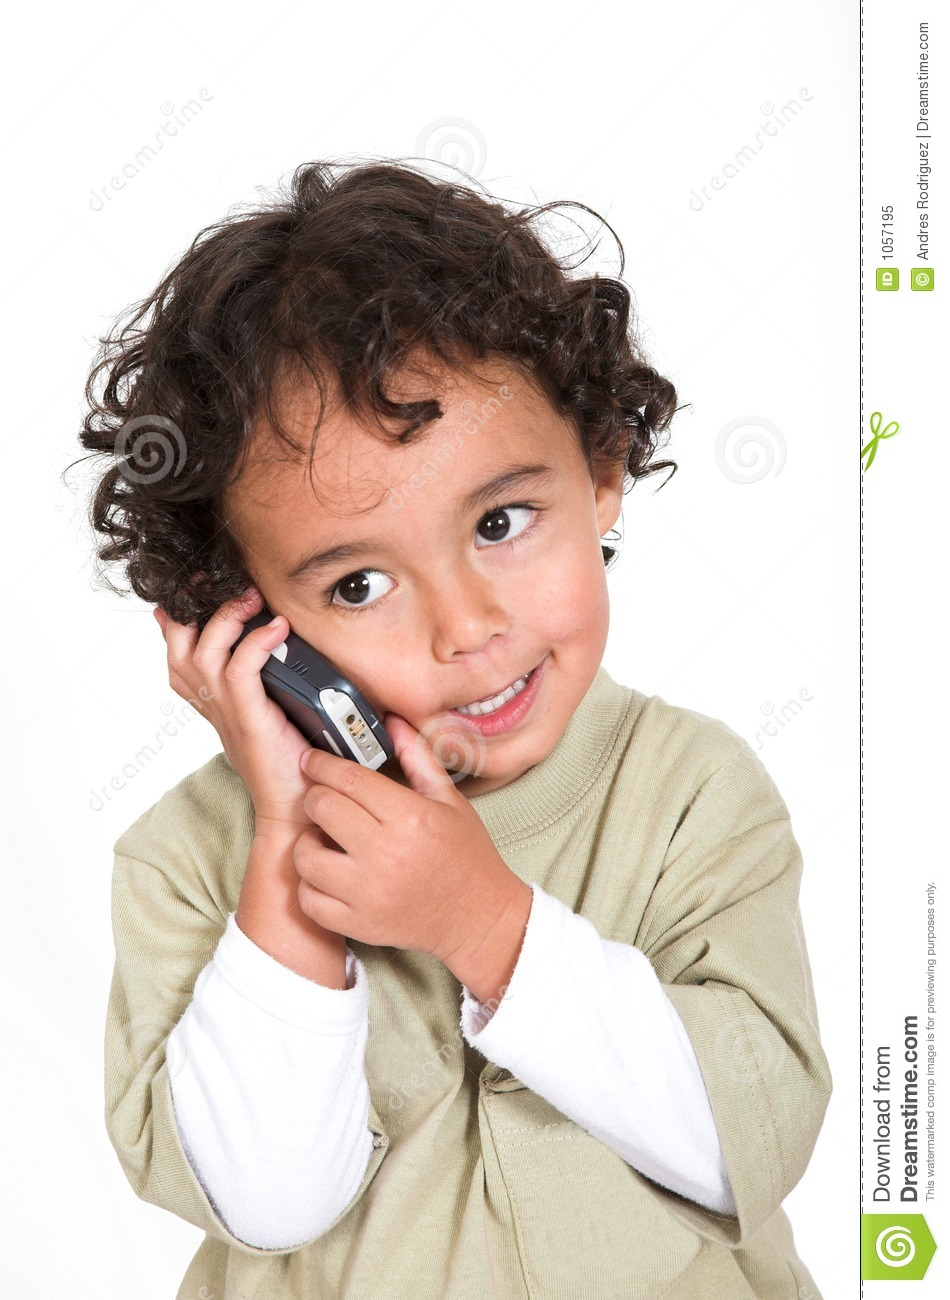 Cute Kid Talking On A Cell Phone Stock Image - Image: 1057195